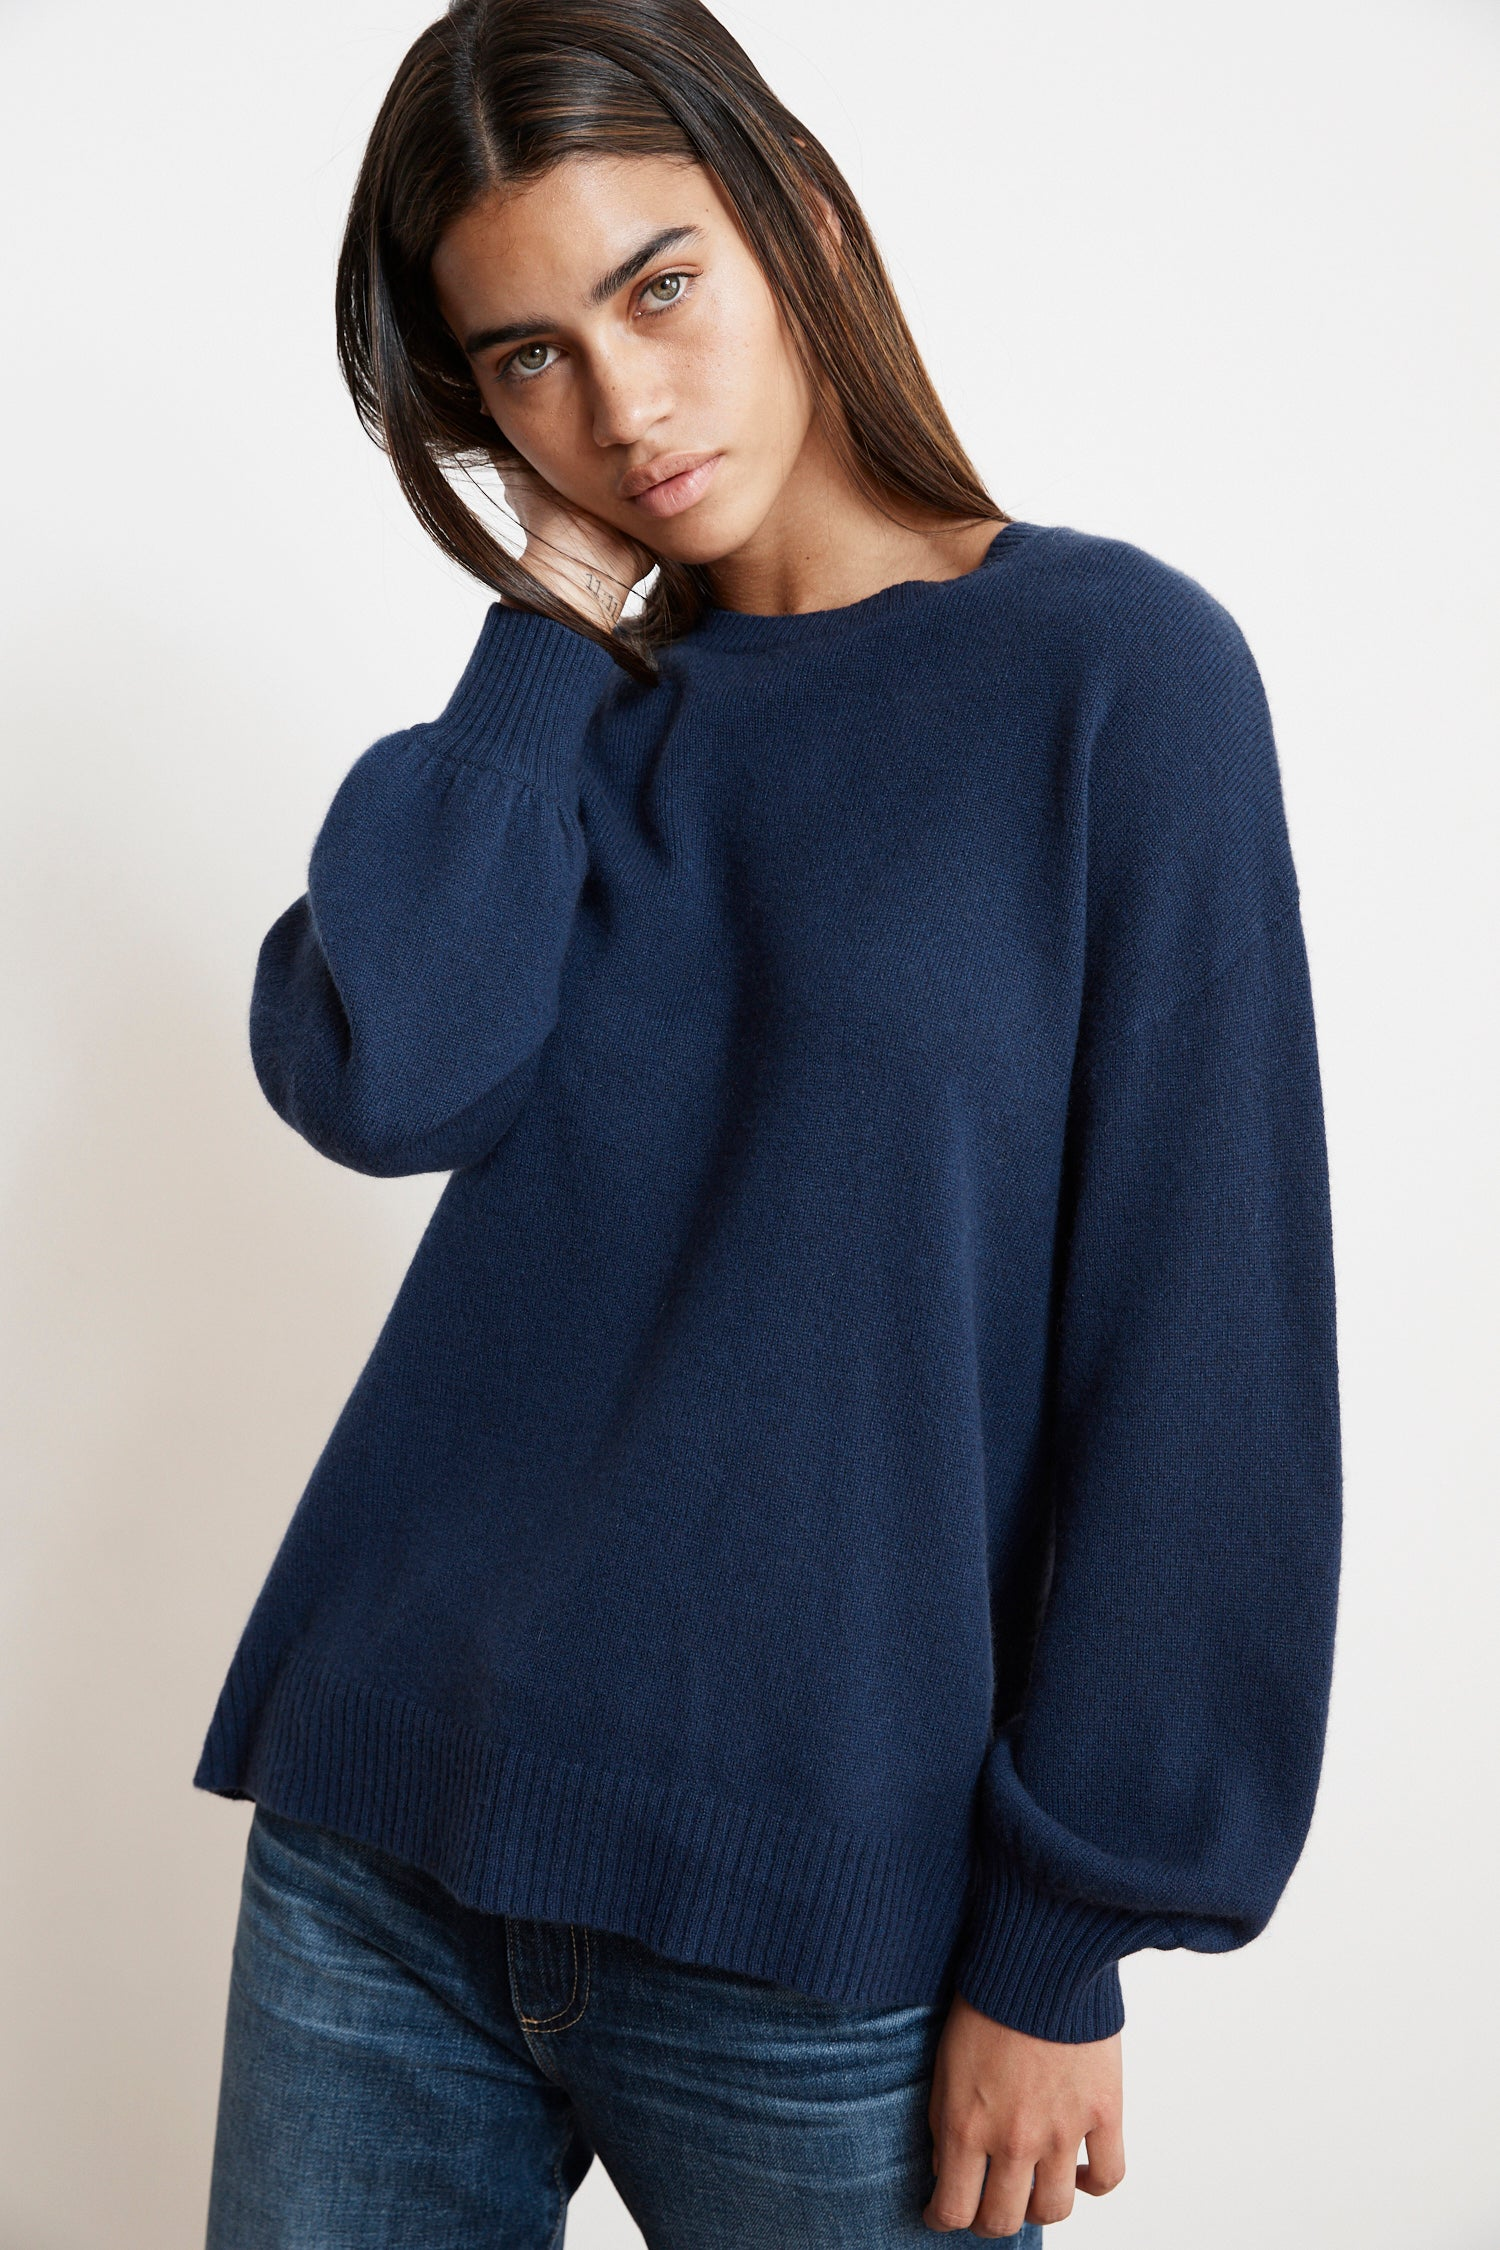 SELINA CASHMERE CREW NECK SWEATER IN COBALT